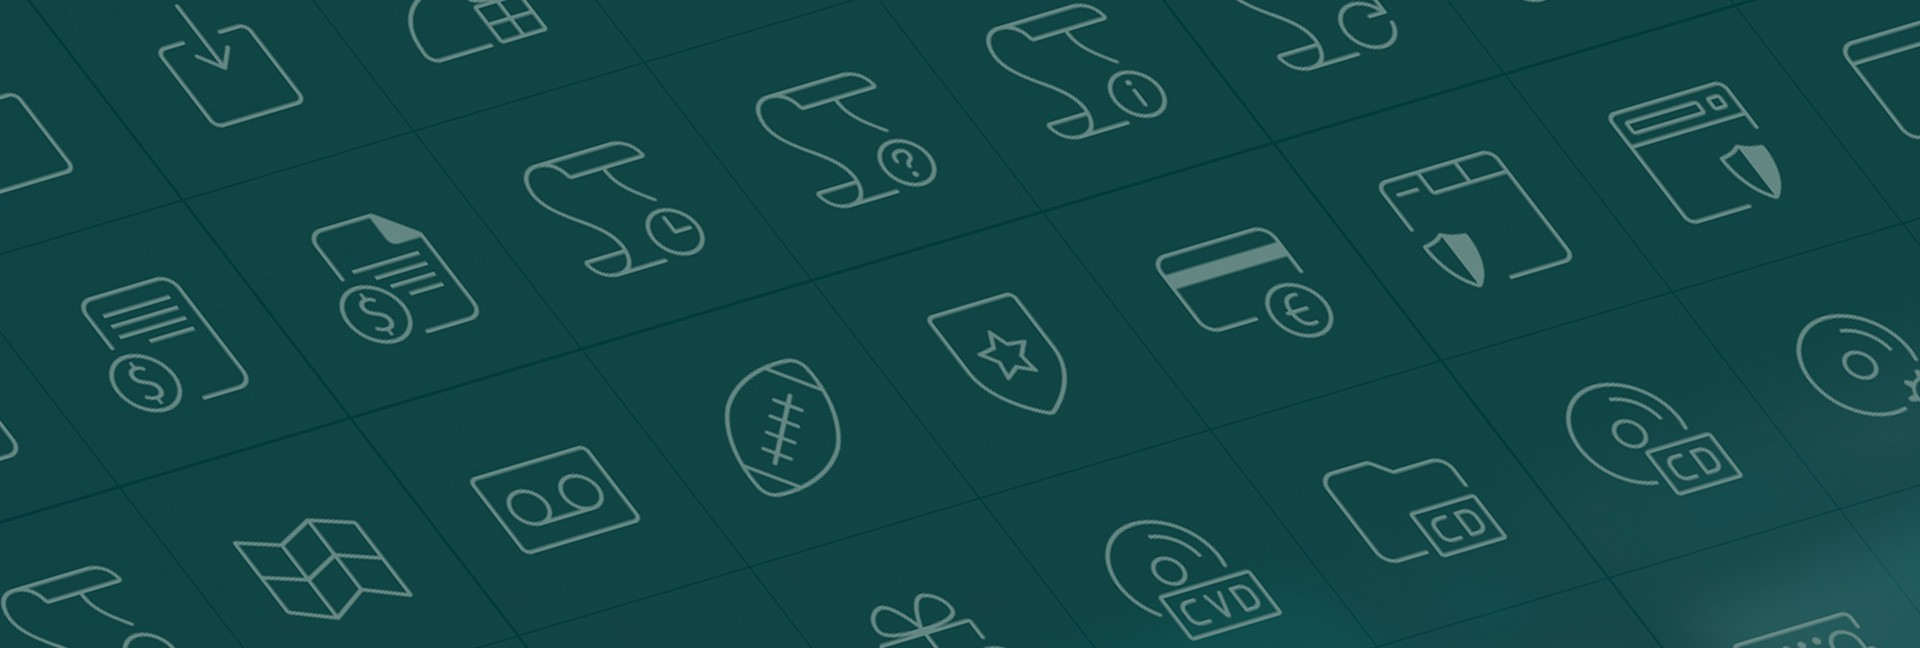 1000+ new user interface icons